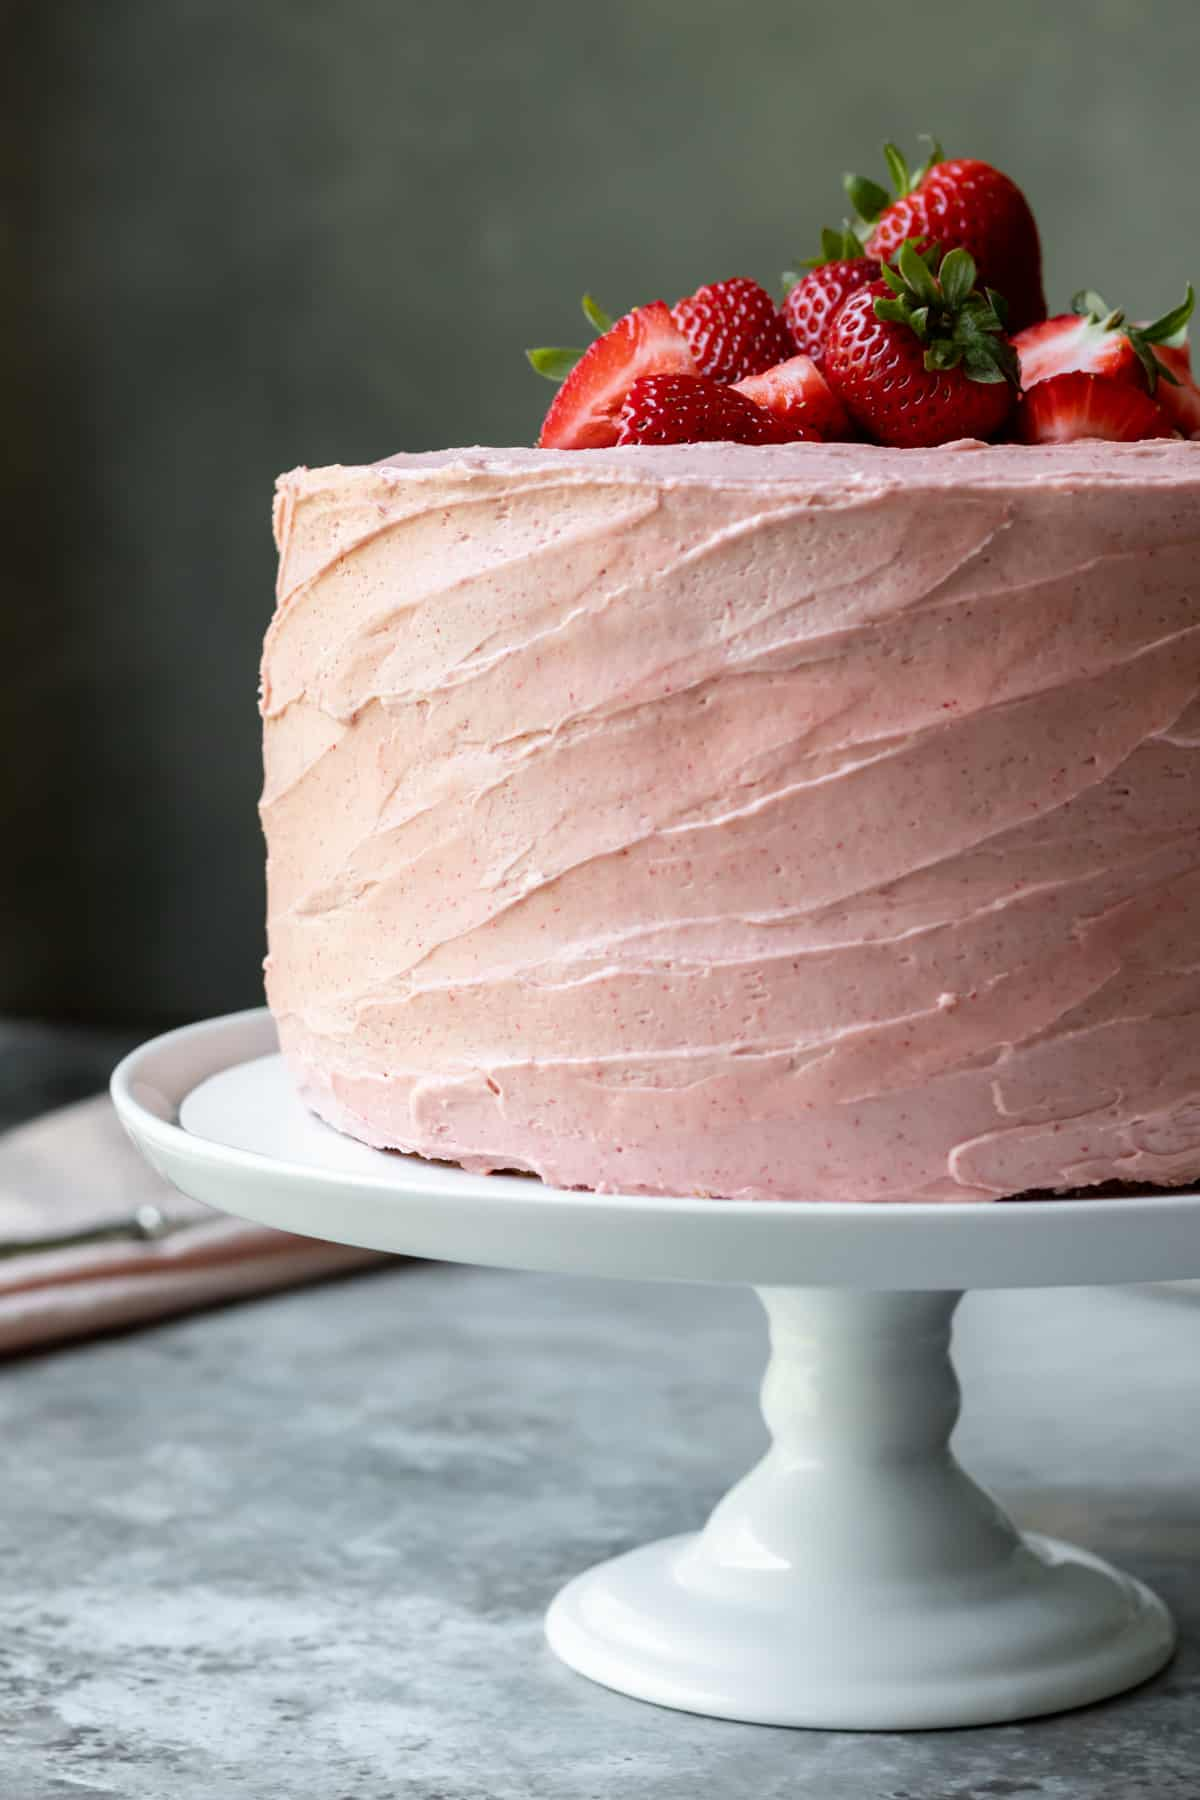 side view of fully frosted cake on white cake stand with strawberries on top.